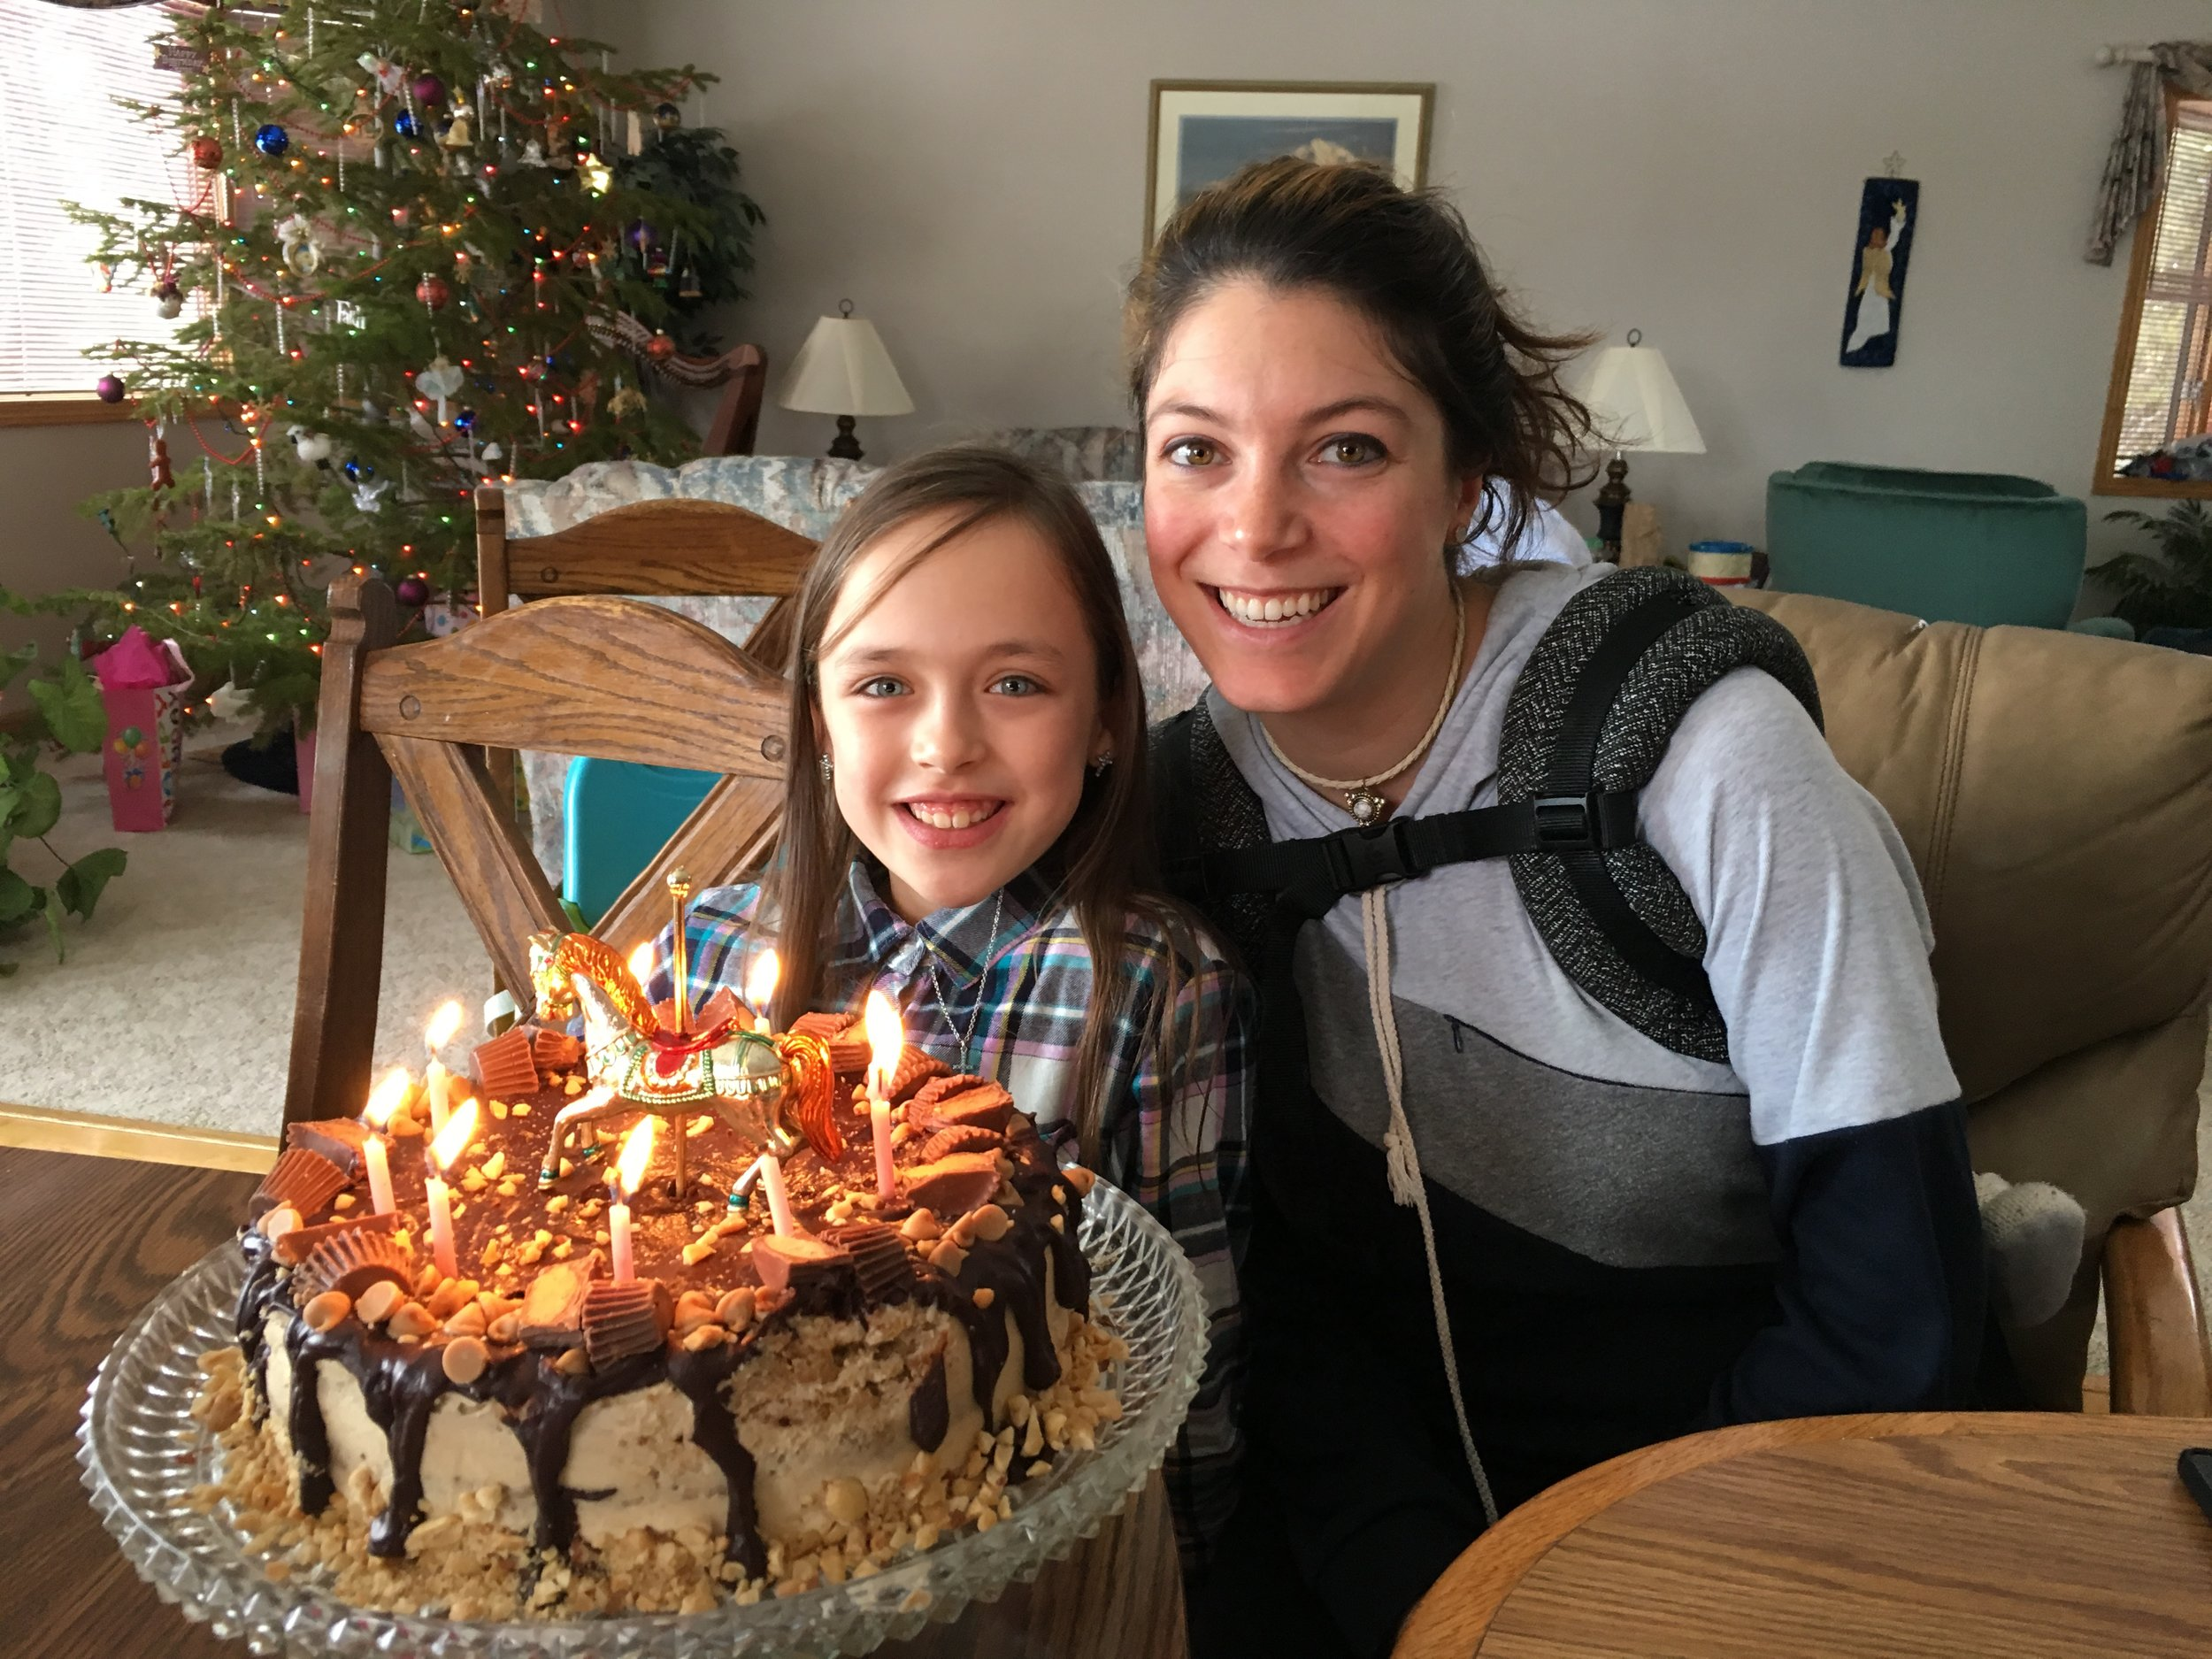 Addey shared her 9th birthday with her Aunt Kathleen.